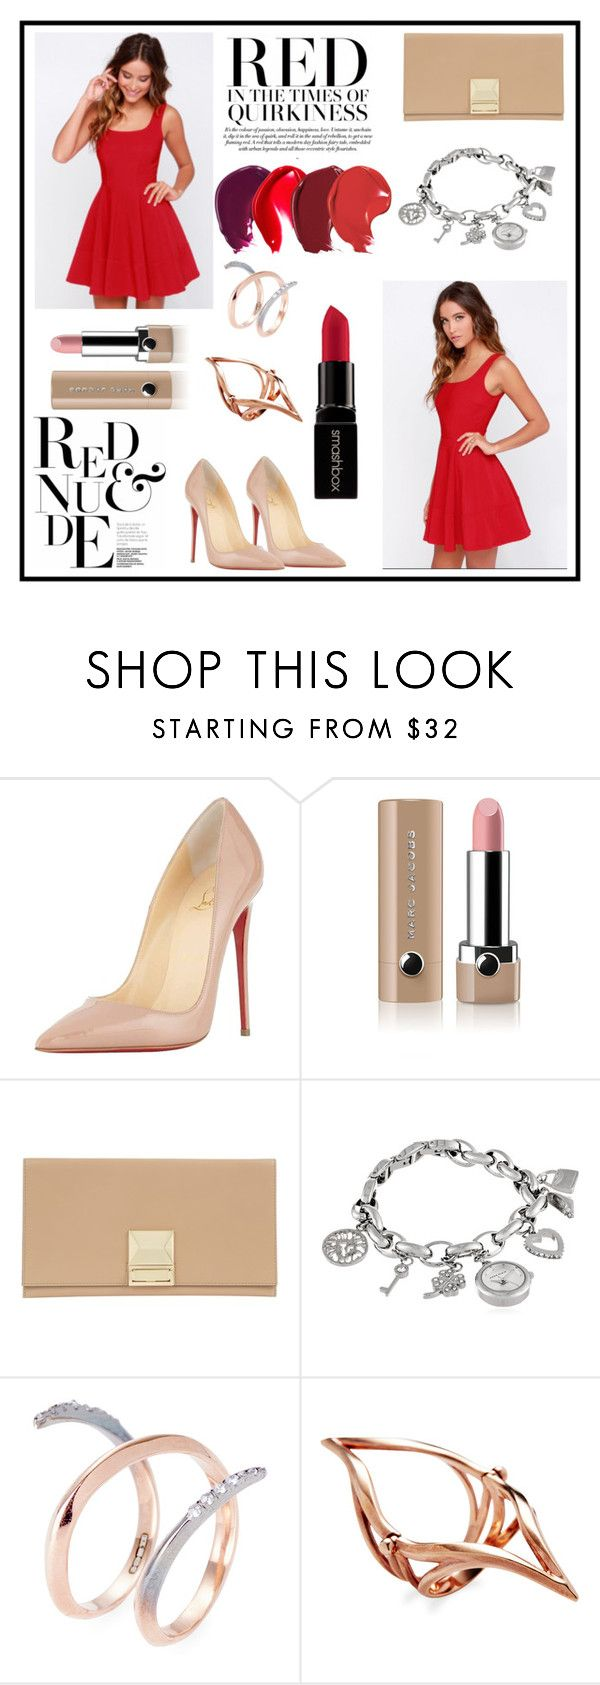 """""""Red and Nude"""" by dumplingxd ❤ liked on Polyvore featuring Christian Louboutin, Marc Jacobs, Jaeger, Anne Klein, Katie Rowland and Smashbox"""